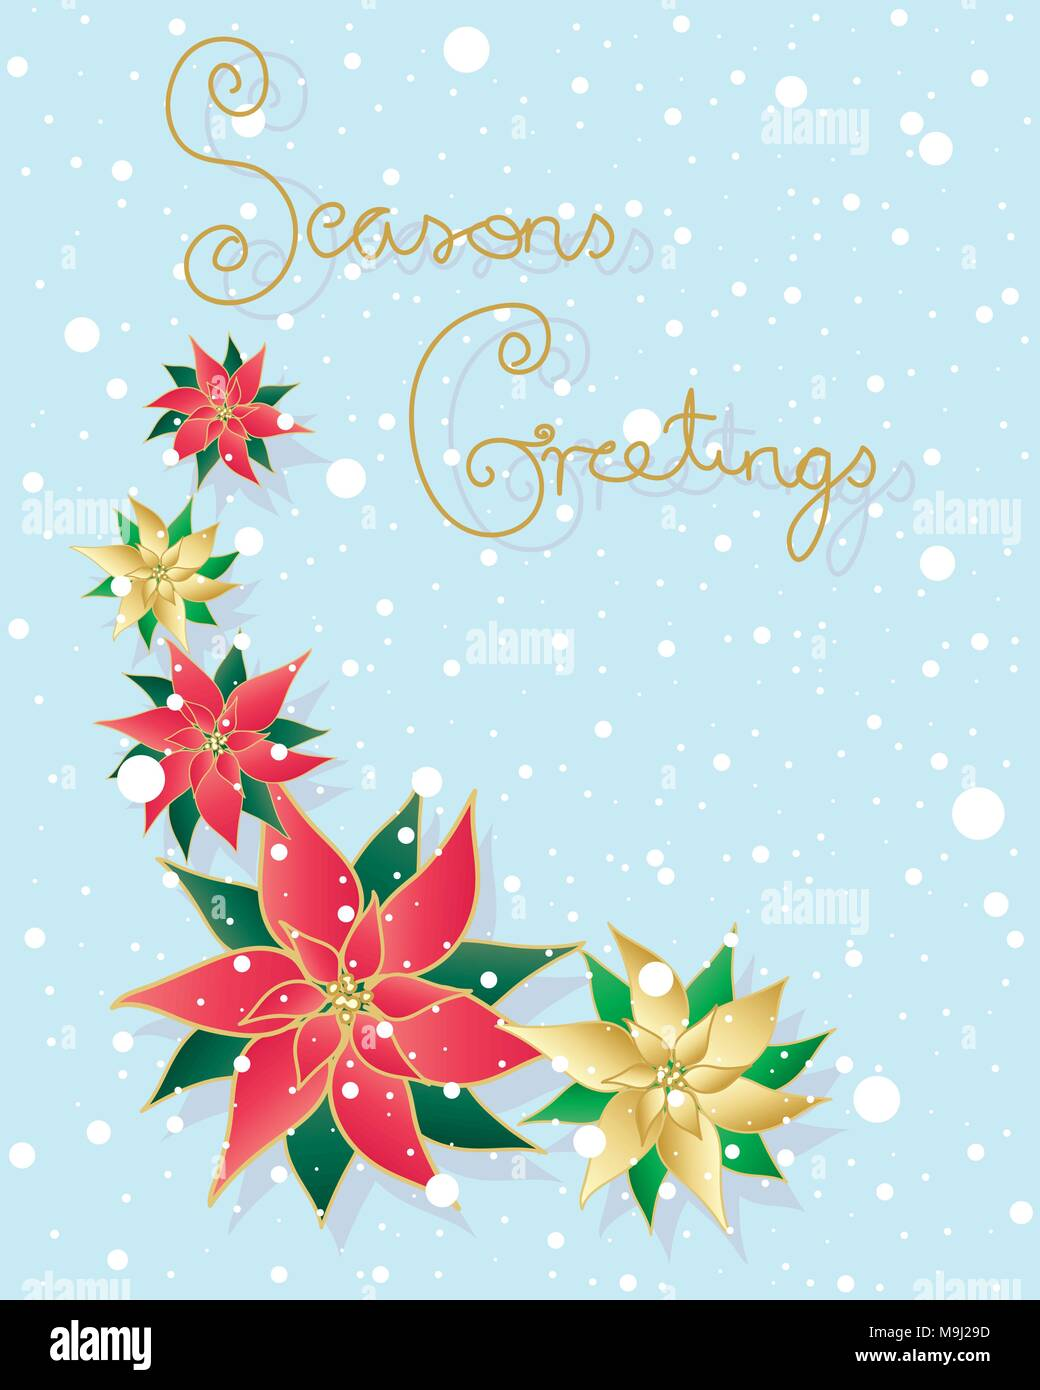 Christmas Card Greetings.An Illustration Of A Traditional Christmas Card With The